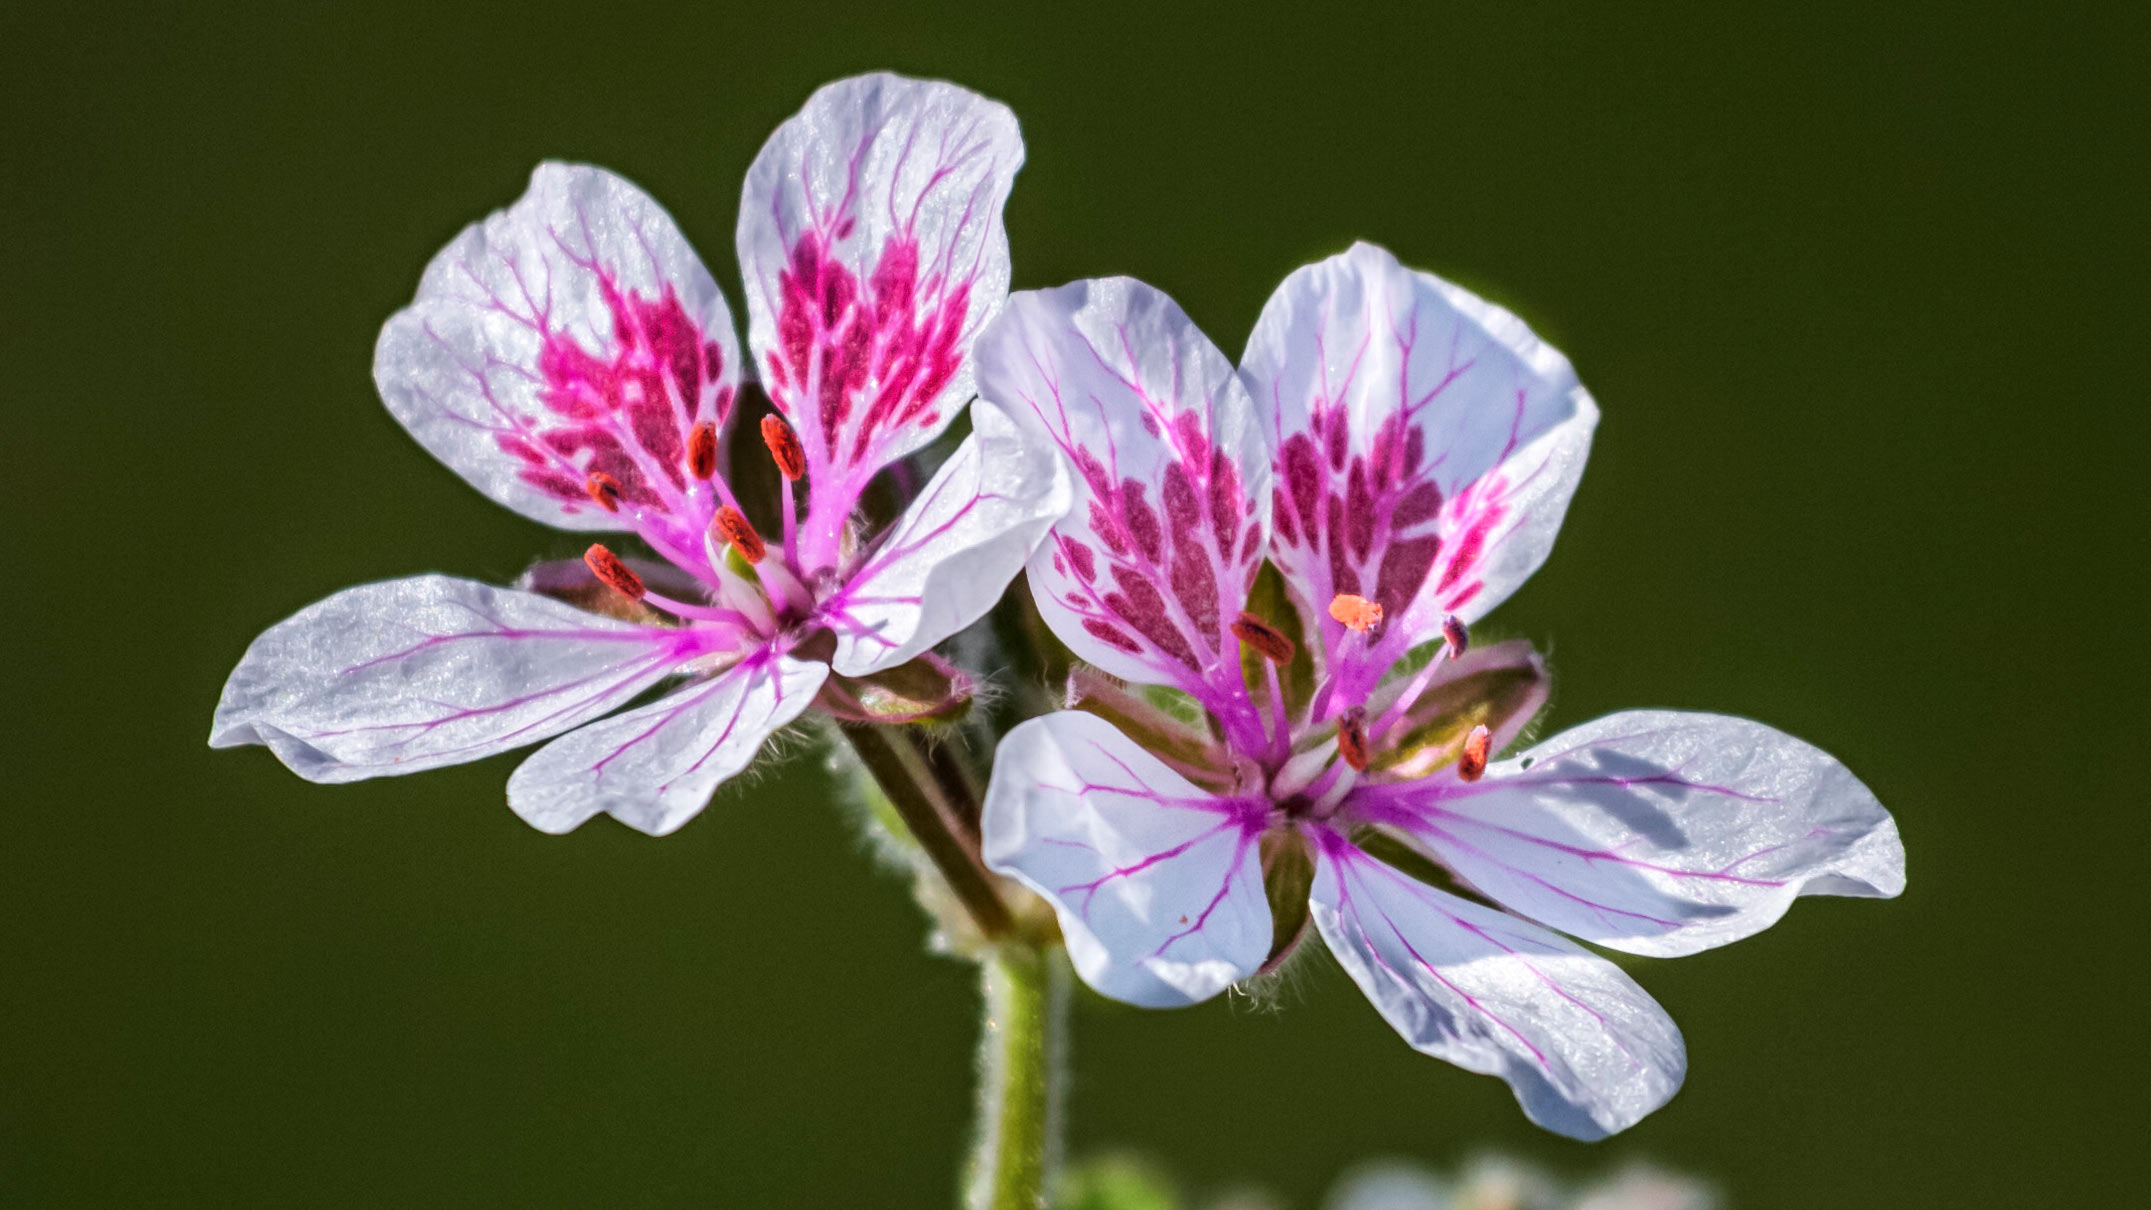 Close up on erodium pelargoniiflorum 'Sweetheart' flowers, heron's bill